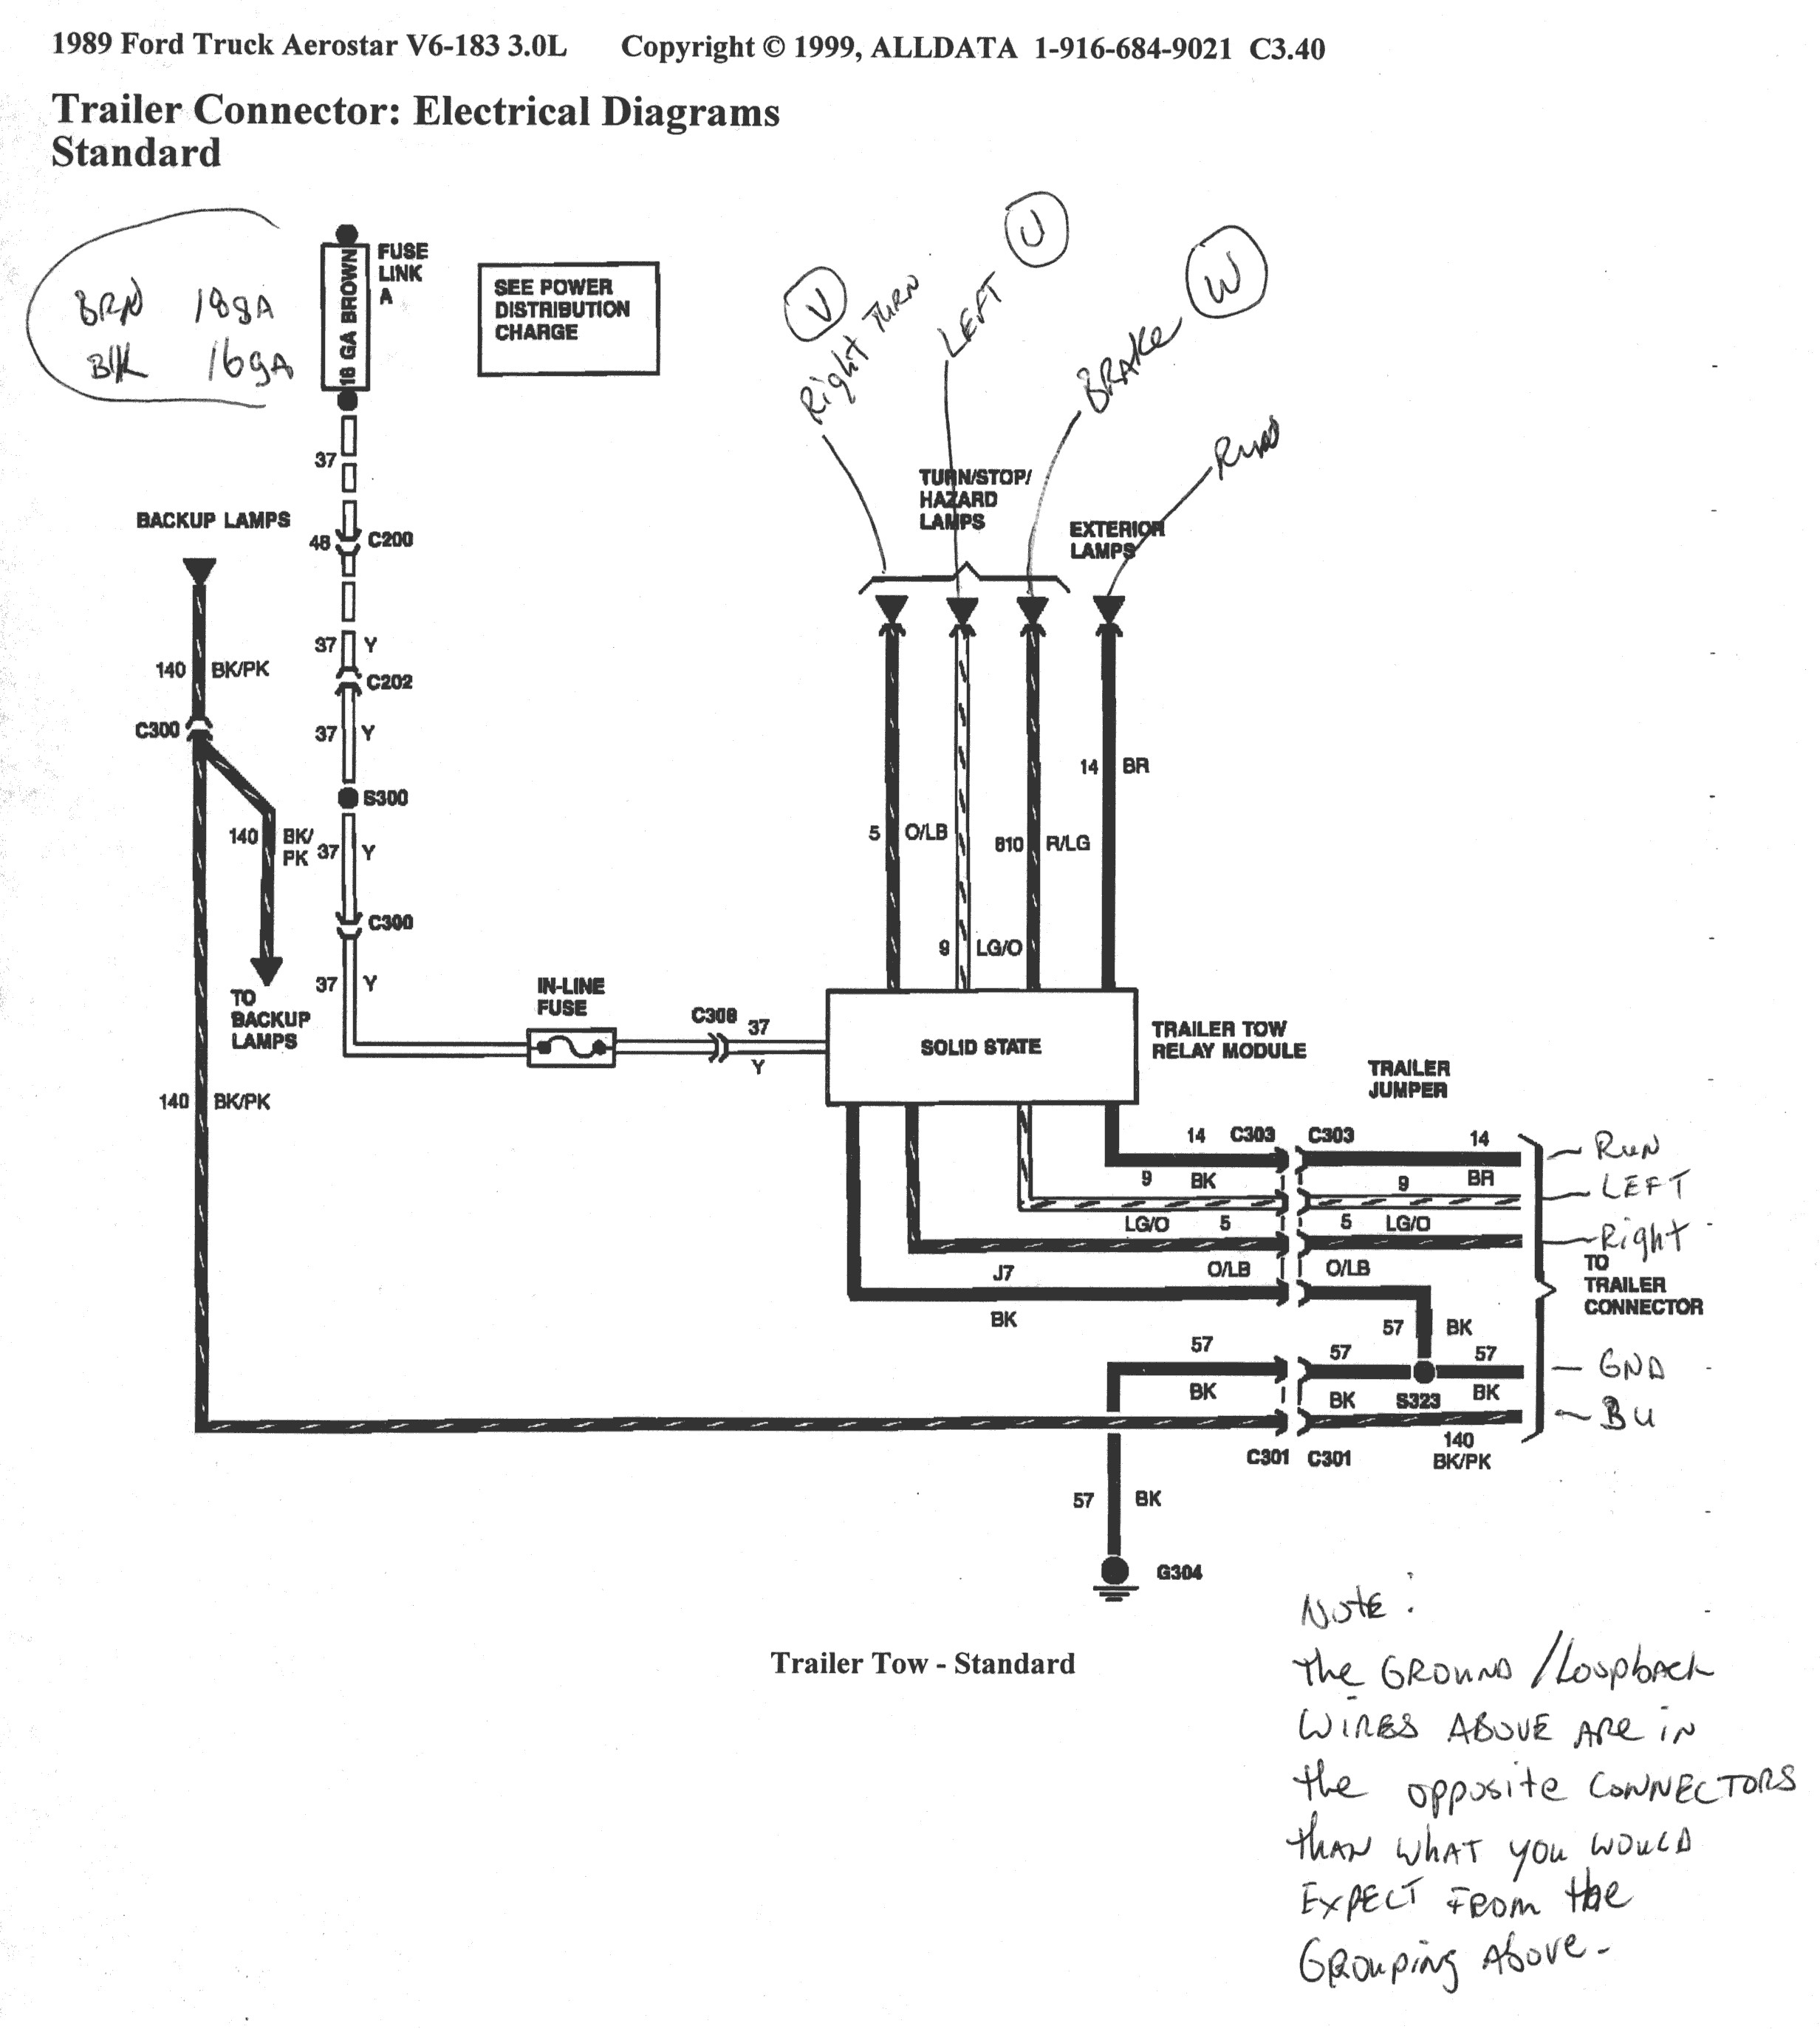 Tail Light Wiring Diagram ford F150 Chevy Wiring Diagrams Beautiful Car Light Diagram Blurts Of Tail Light Wiring Diagram ford F150